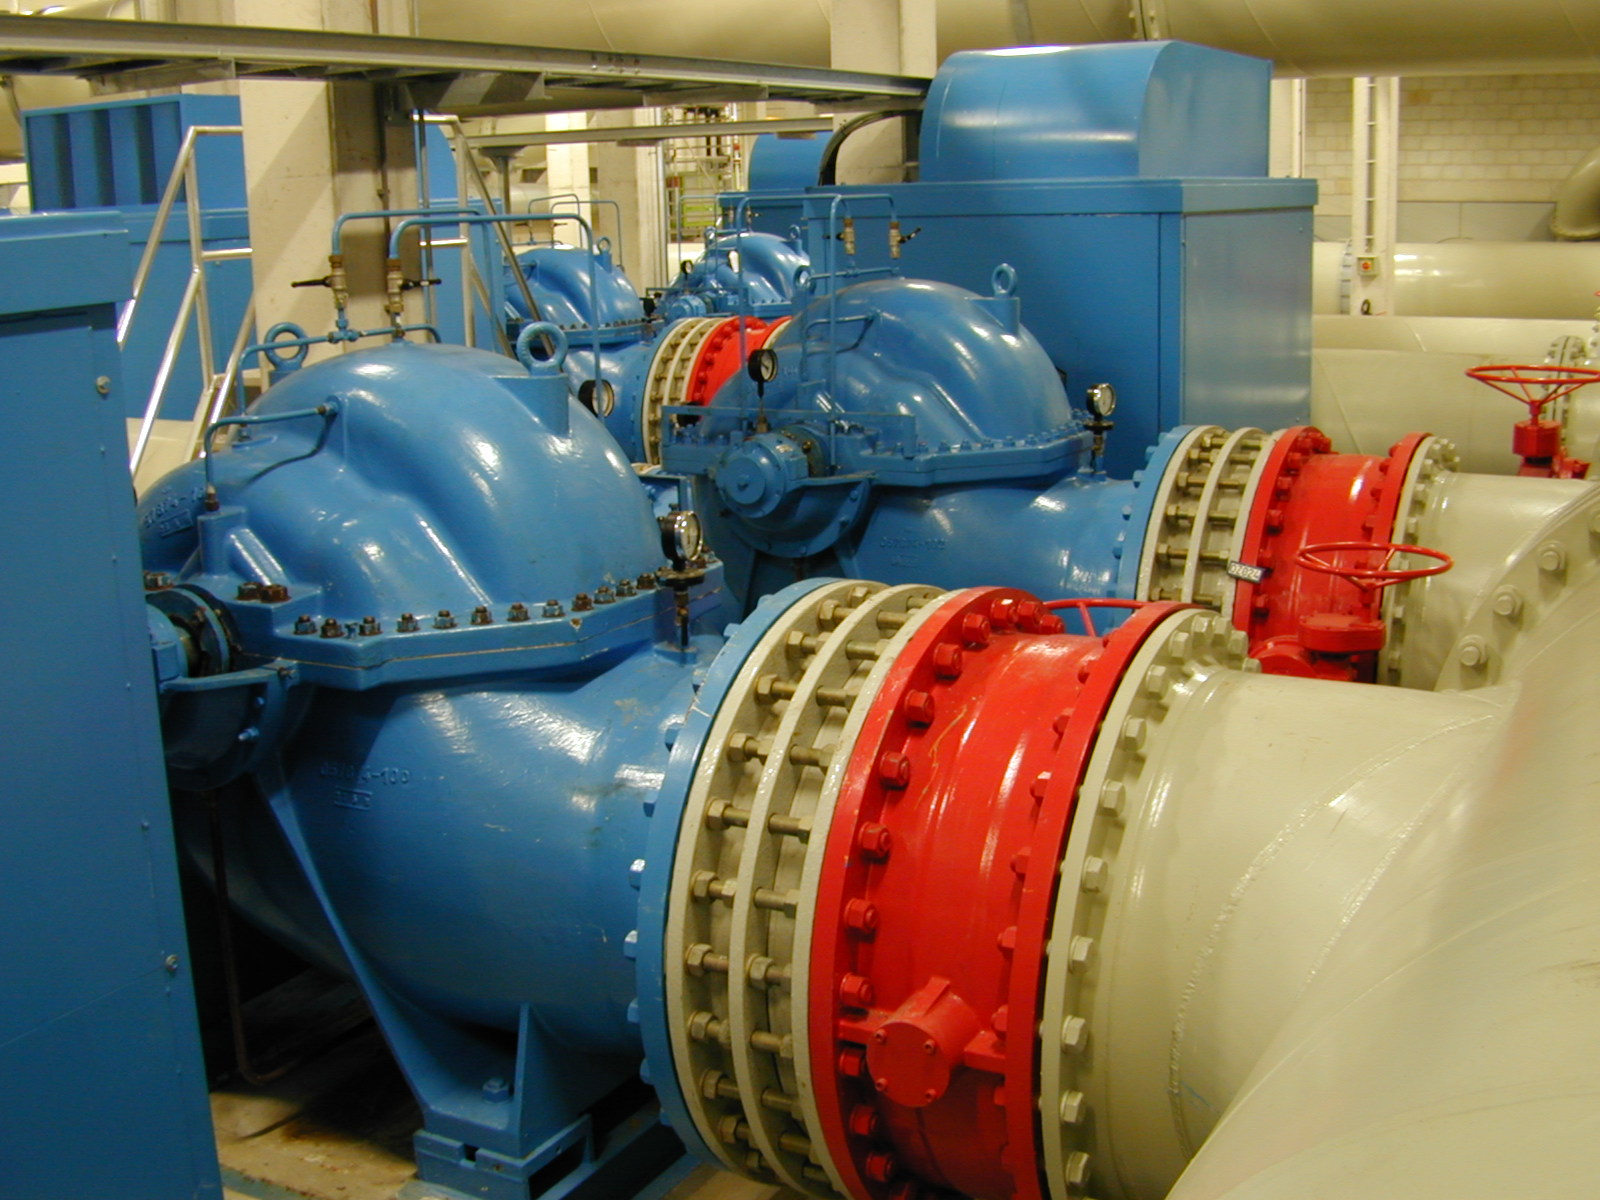 turbine engine engines pipe pipes pipelines powerplant waterplant industry architecture interiors